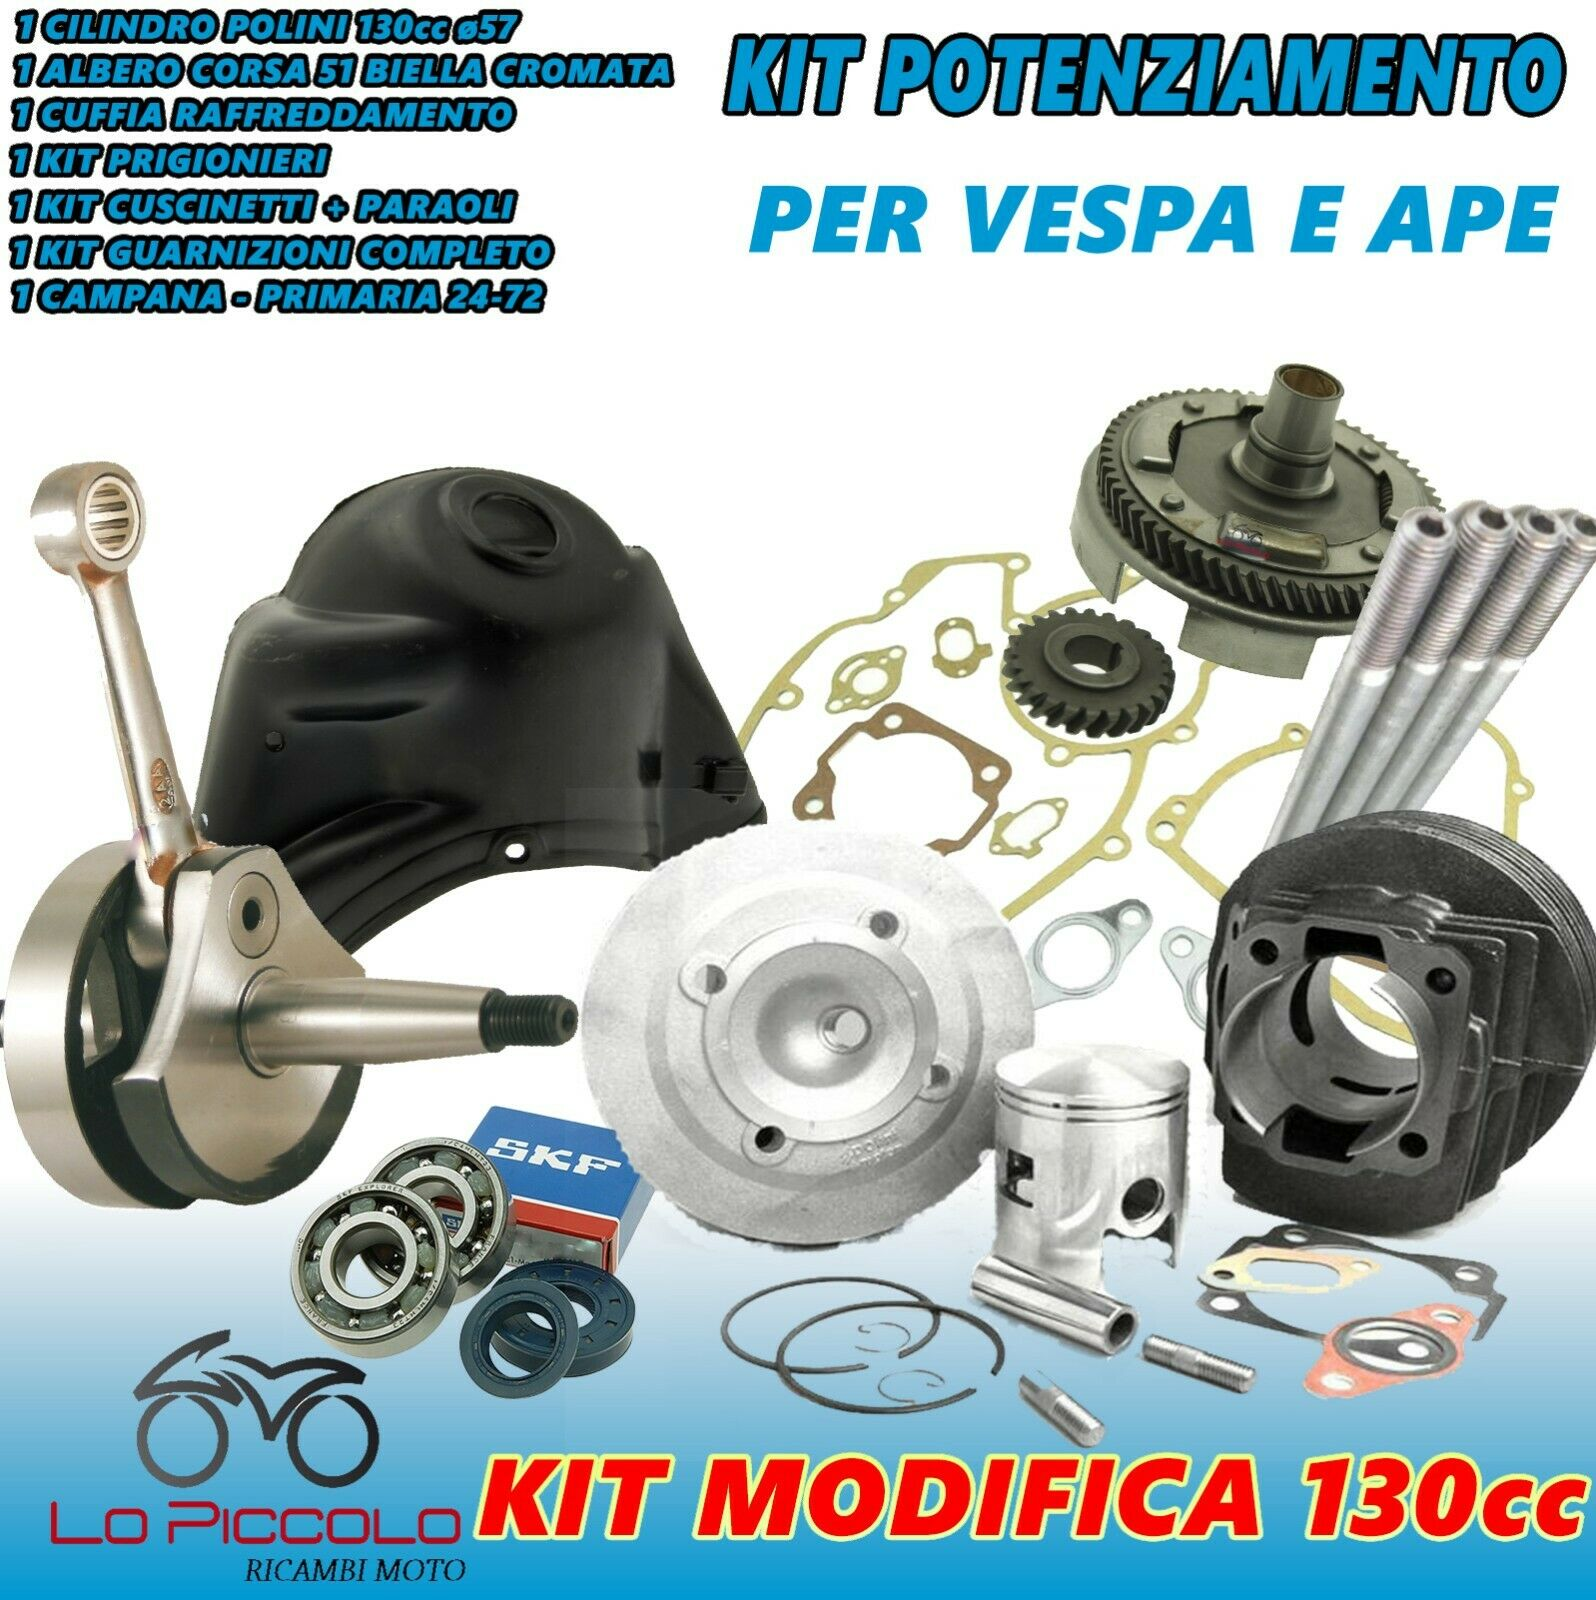 kit modifica cilindro 130 polini albero motore campana cuffia ape vespa 50 pk xl ebay. Black Bedroom Furniture Sets. Home Design Ideas